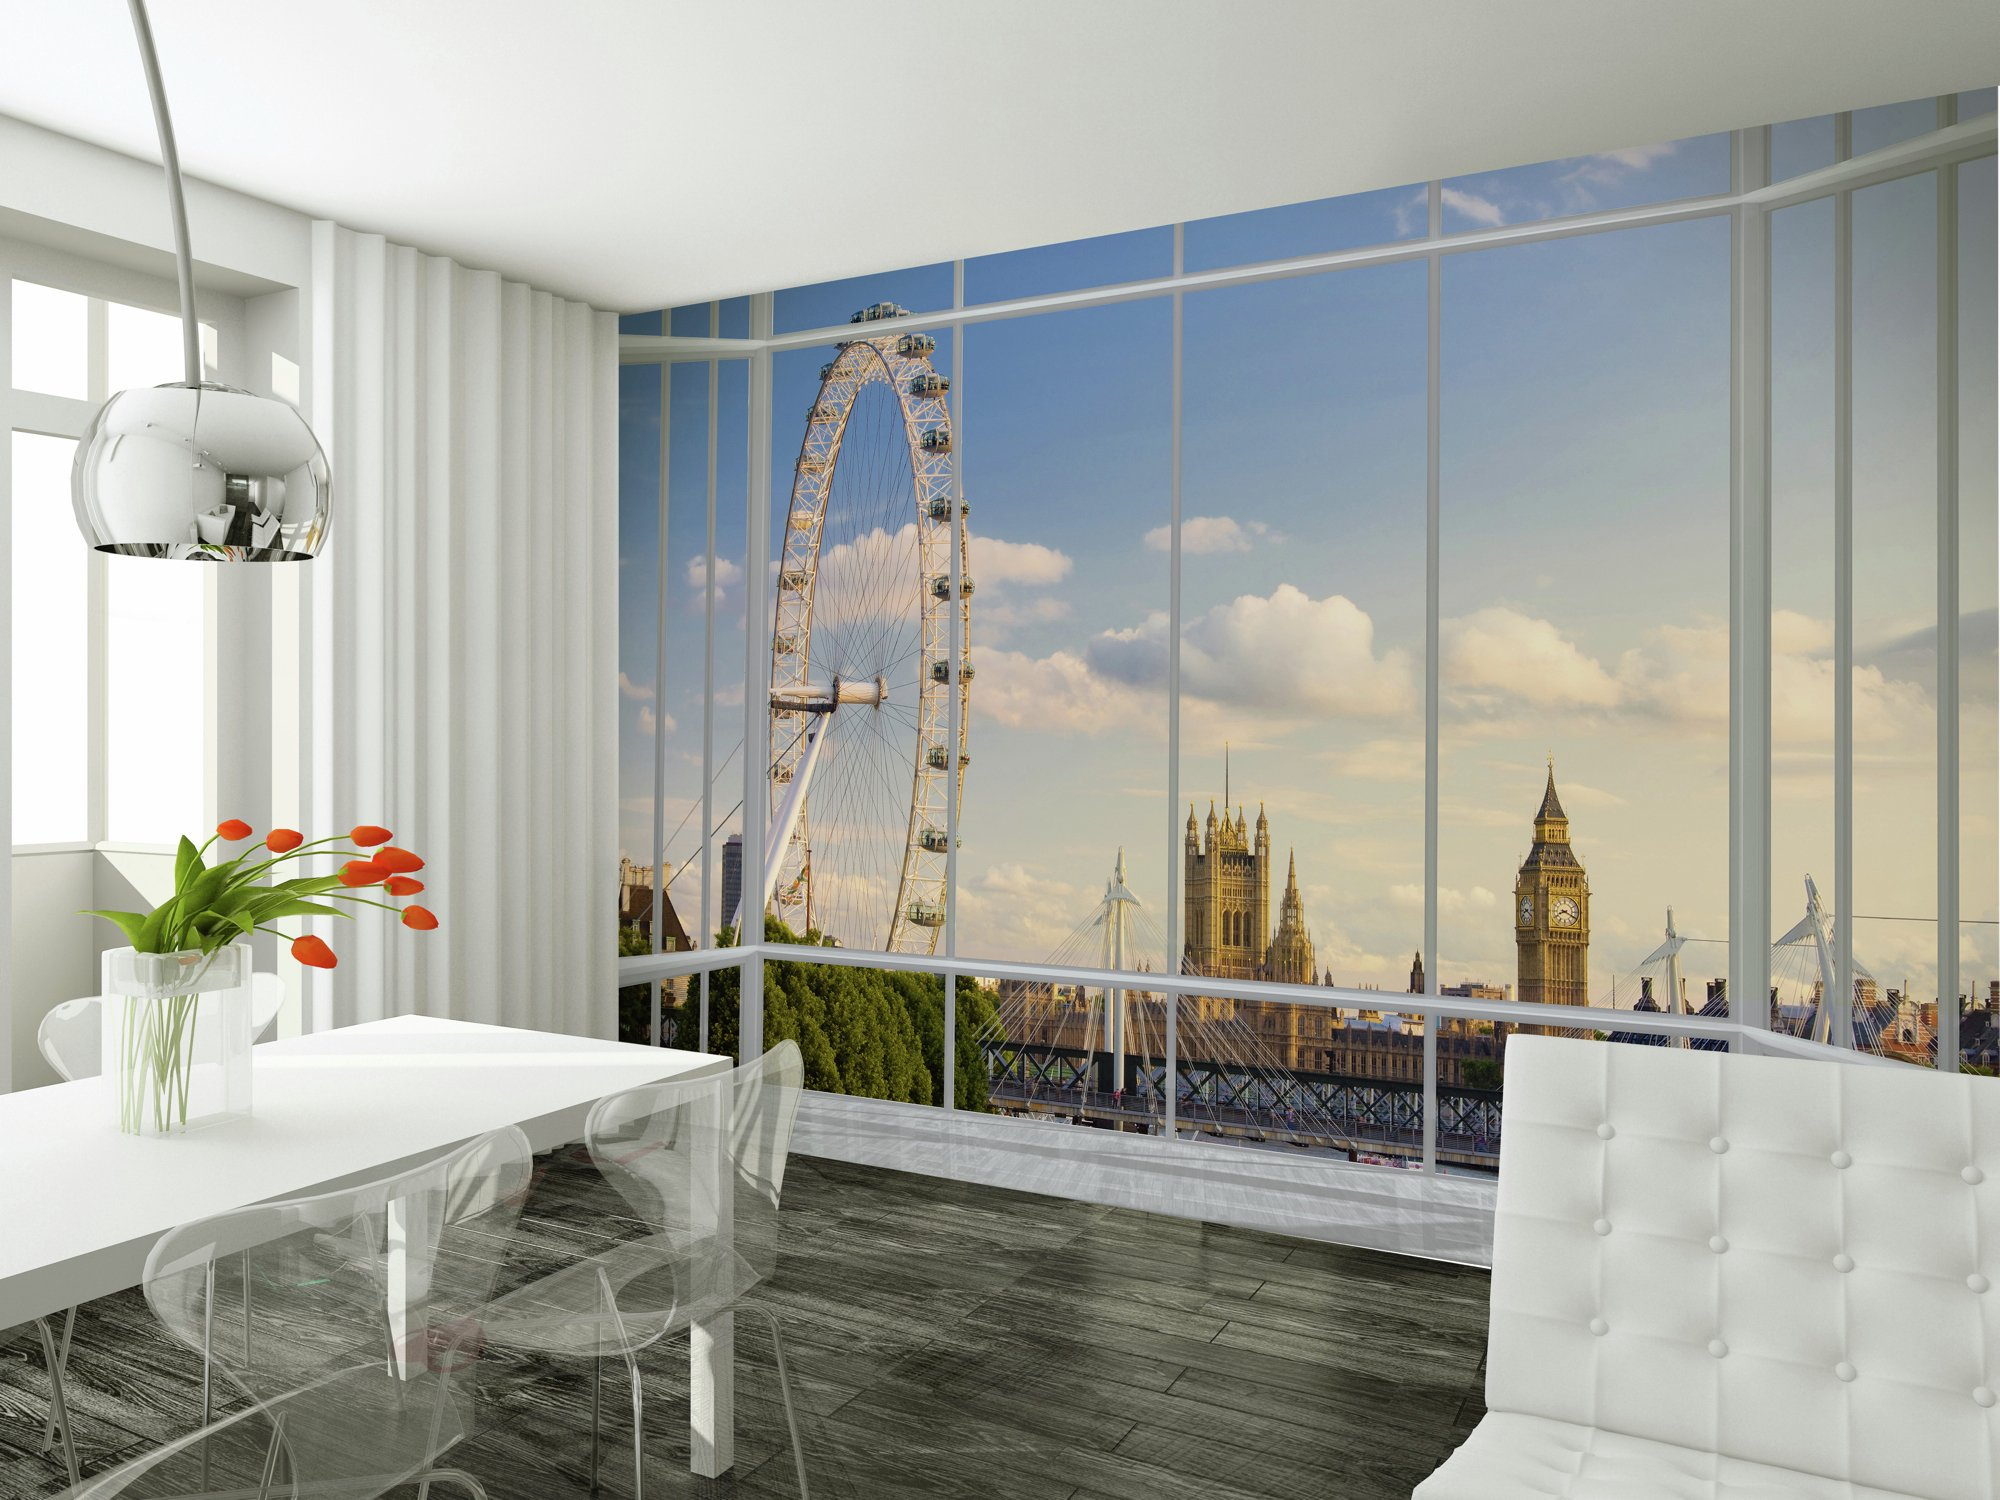 image for 1Wall - London Window Giant Mural